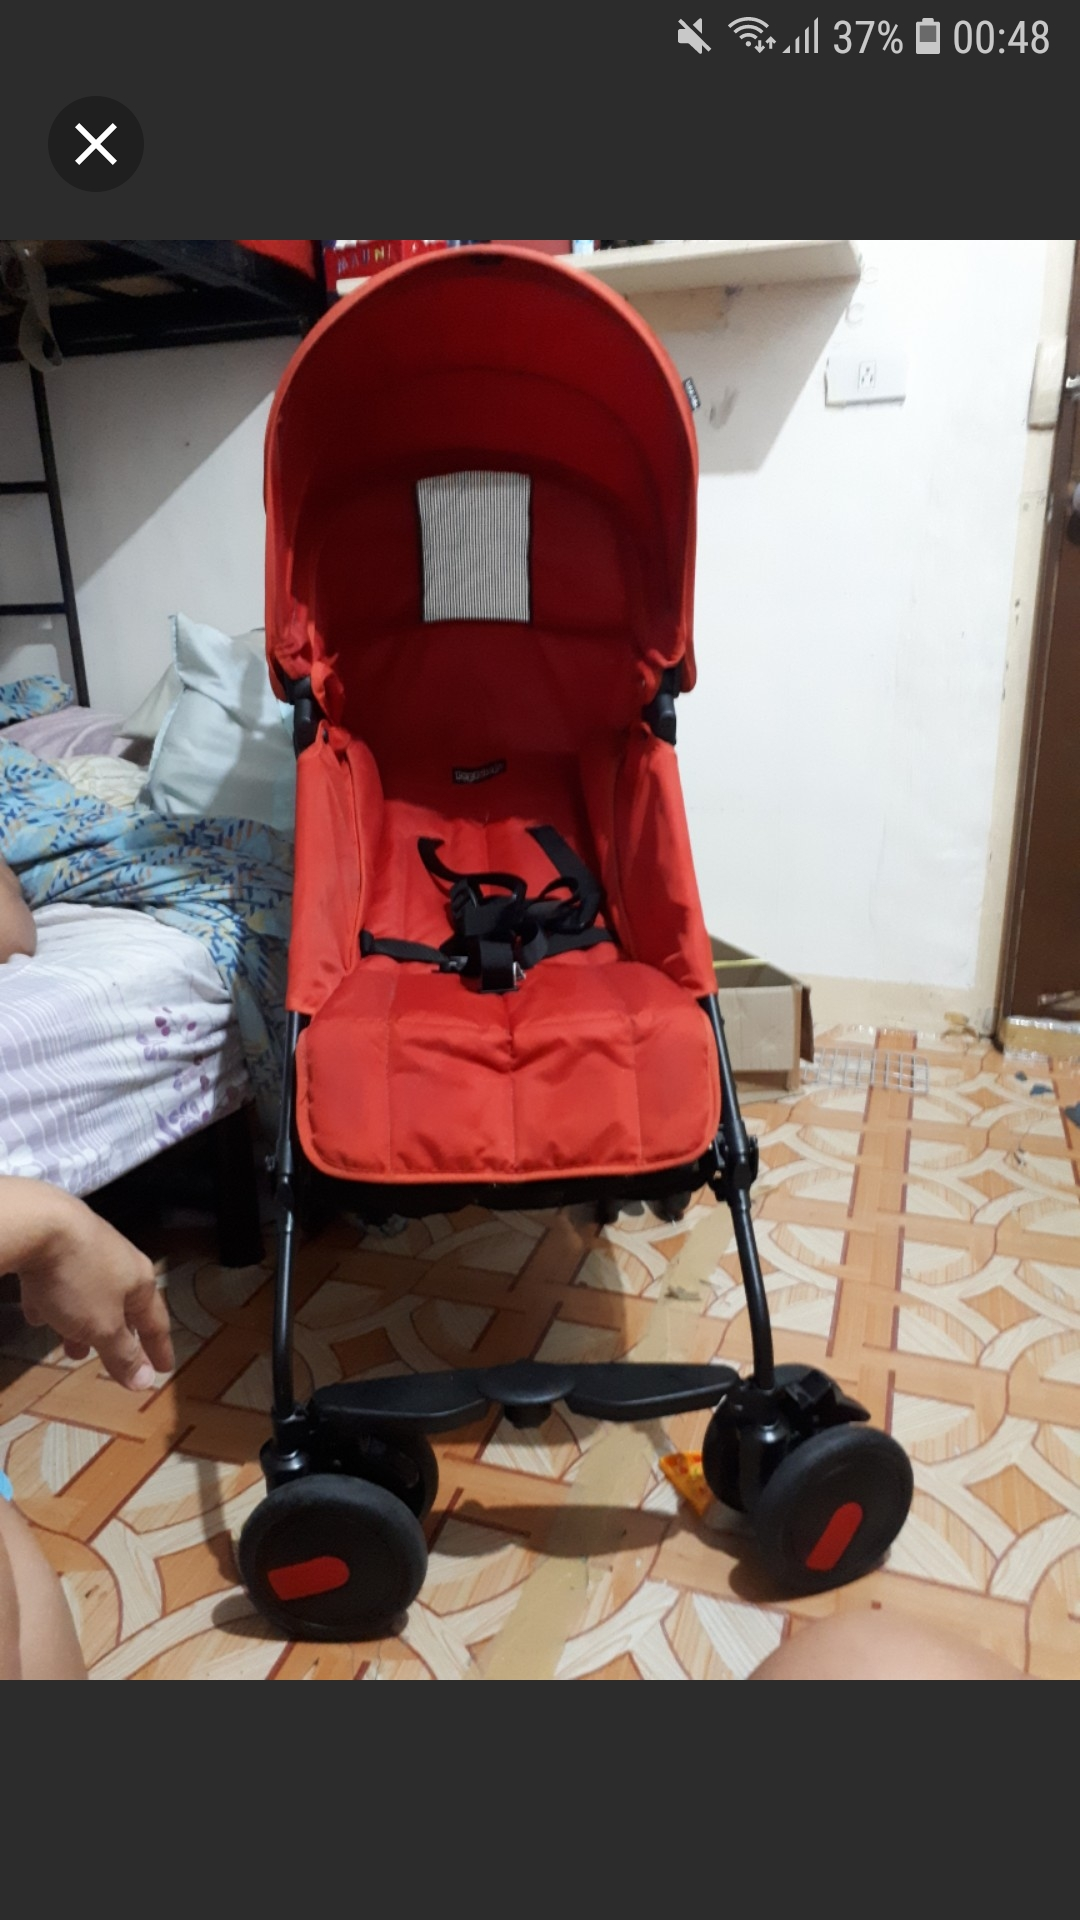 Peg Perego Pliko Matic Stroller Instructions Kawasaki Barako 175 Bulacan Computer Gadgets For Sale